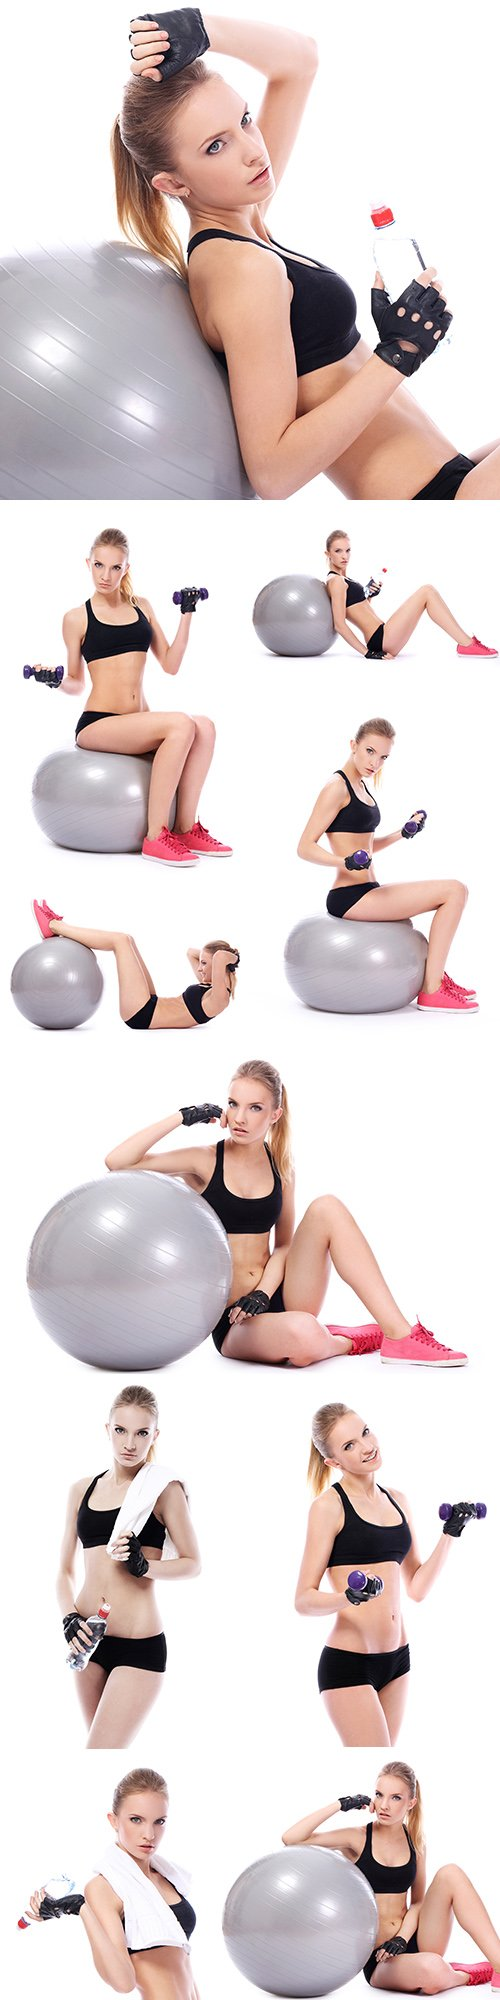 Woman does exercises with gantels on fitness ball